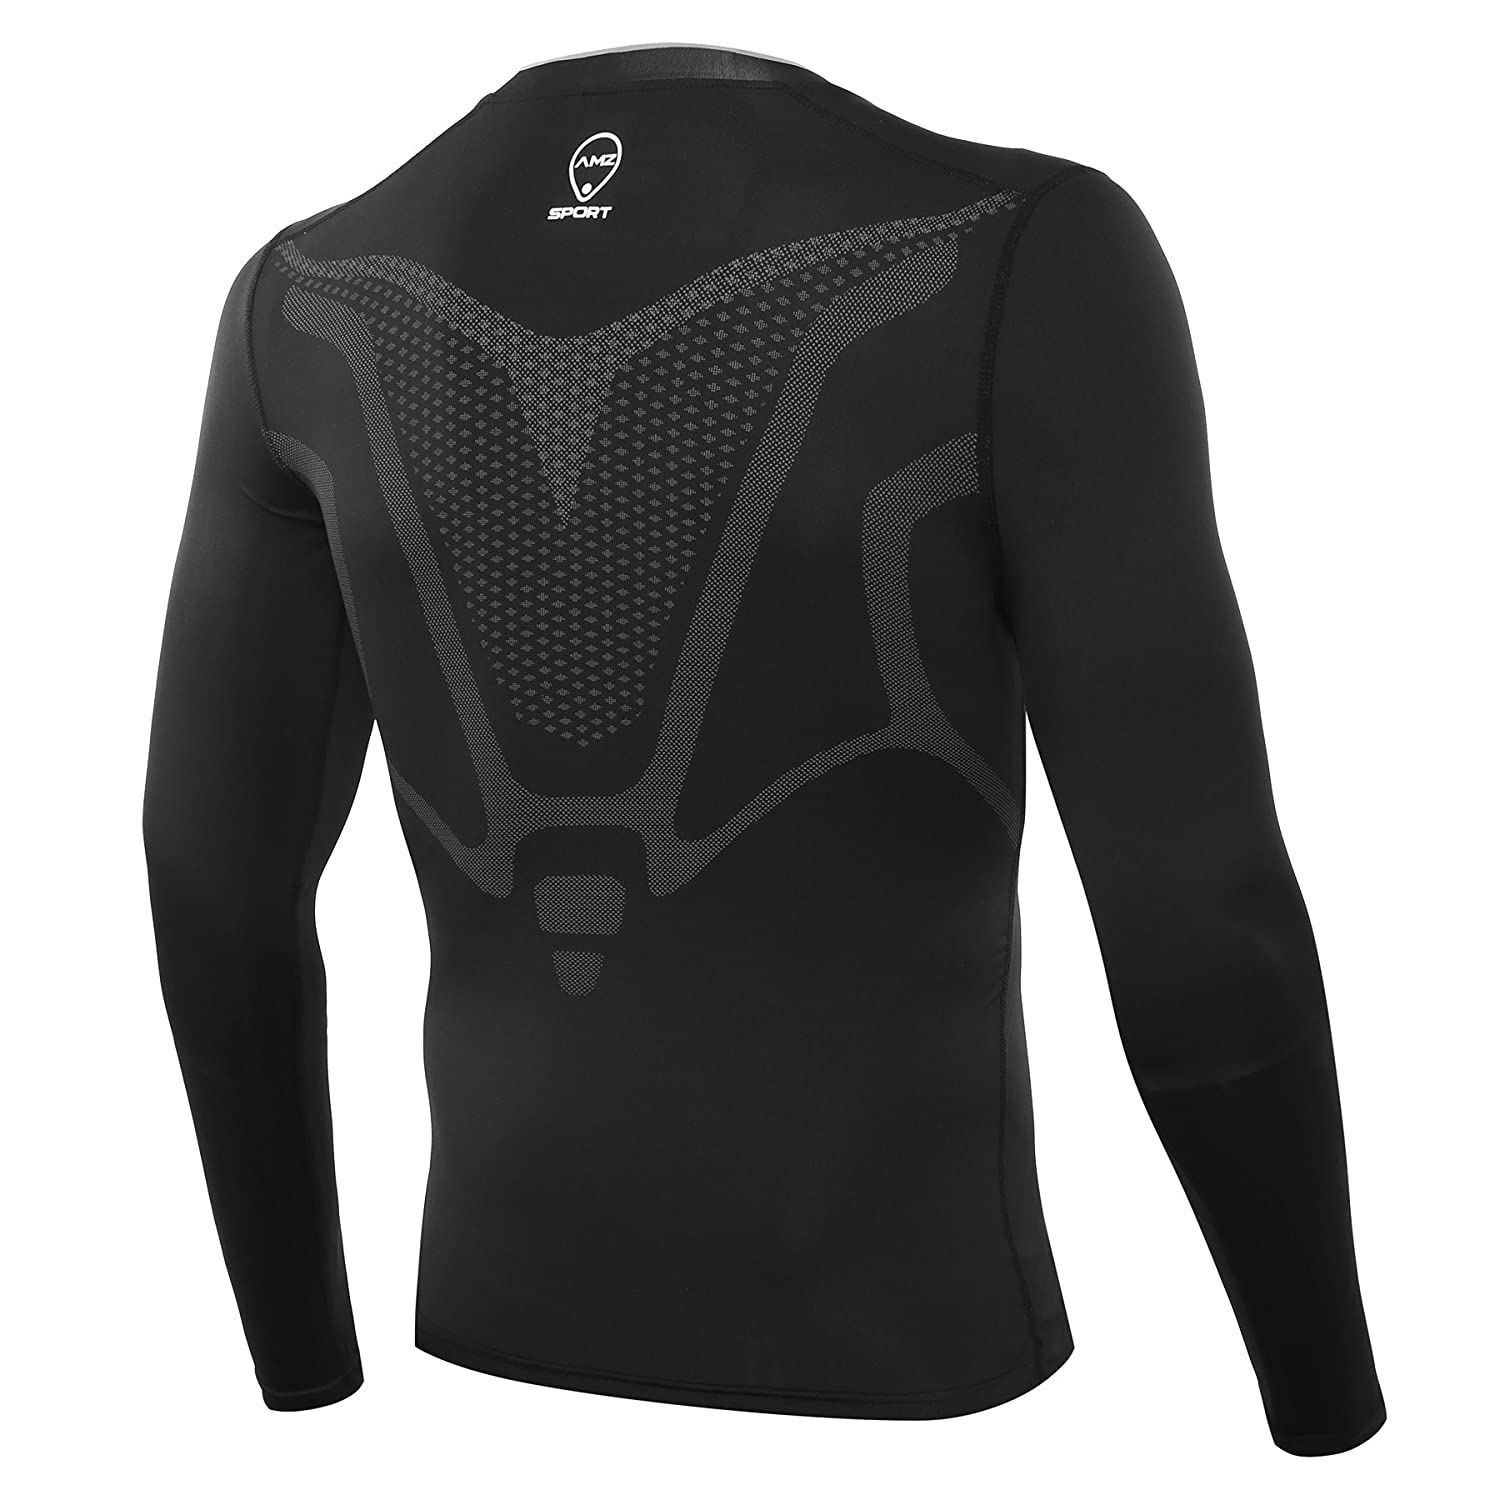 171f1188dc AMZSPORT Men's Long Sleeve Compression Top Cool Dry Tight Baselayer ALL  SEASON for Running Training